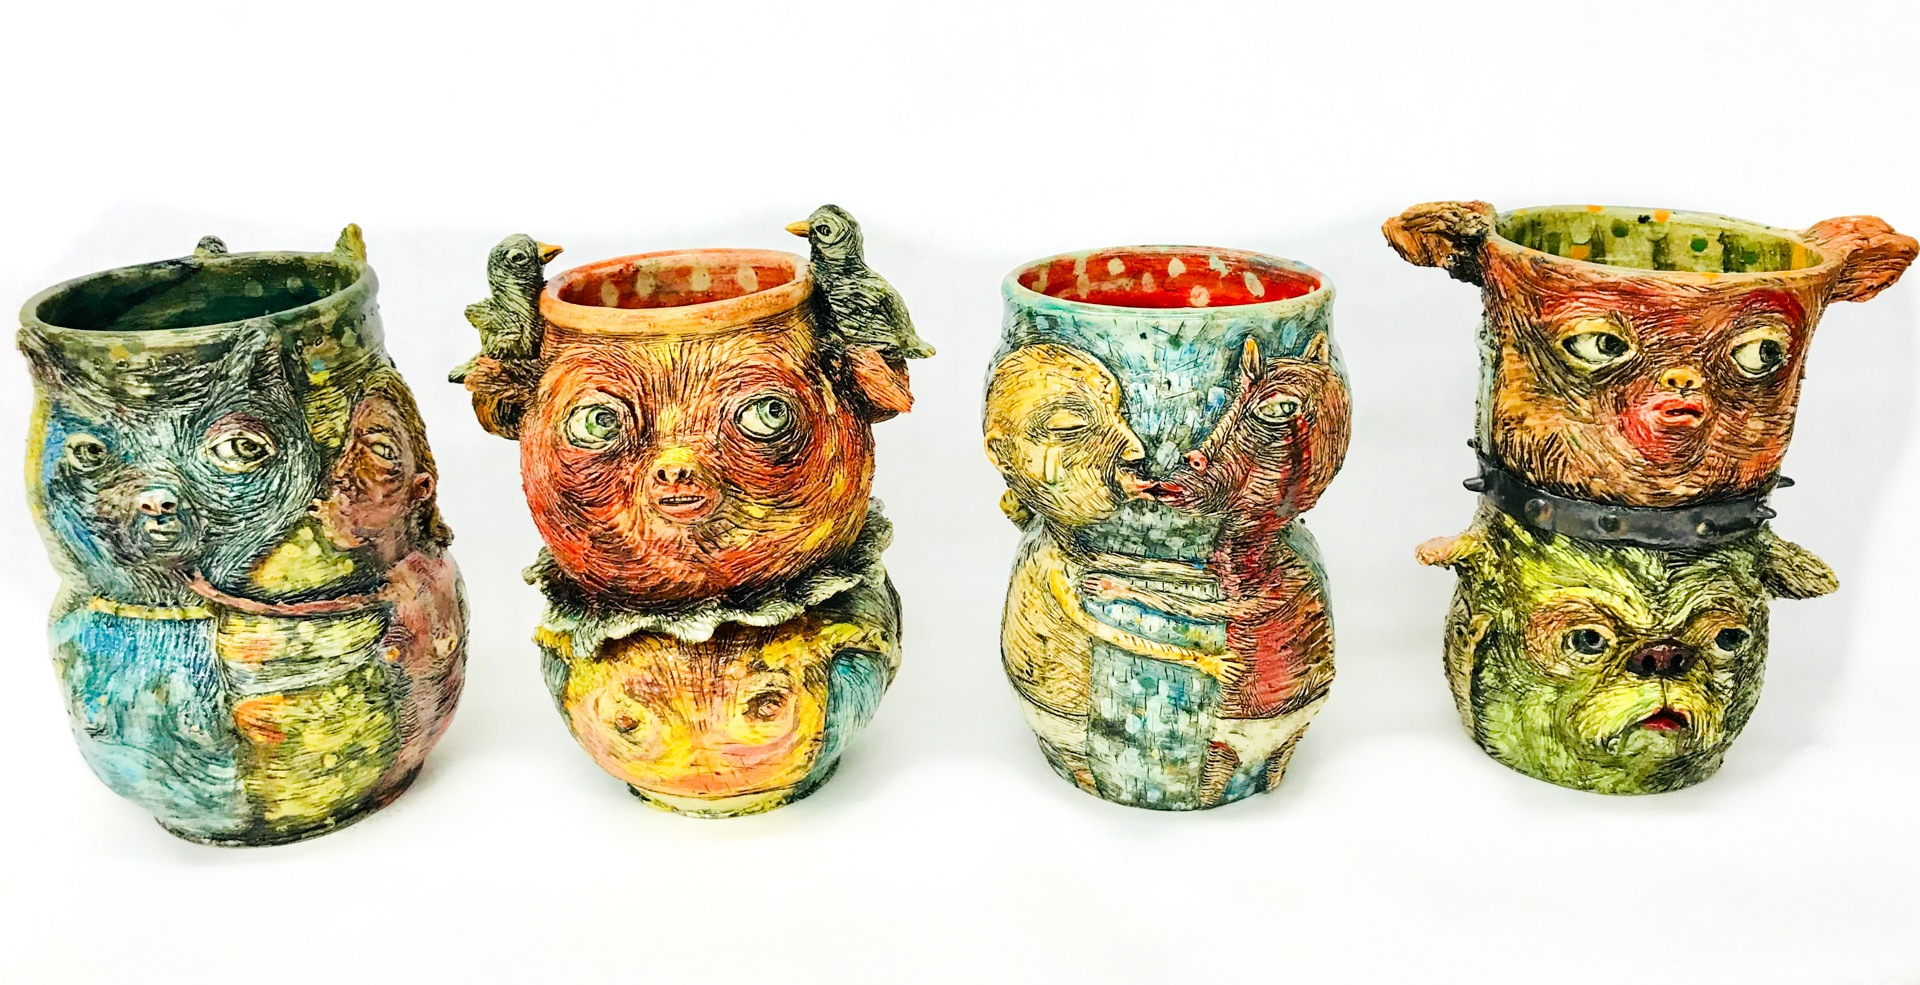 Four Thrown Vessels, 2018